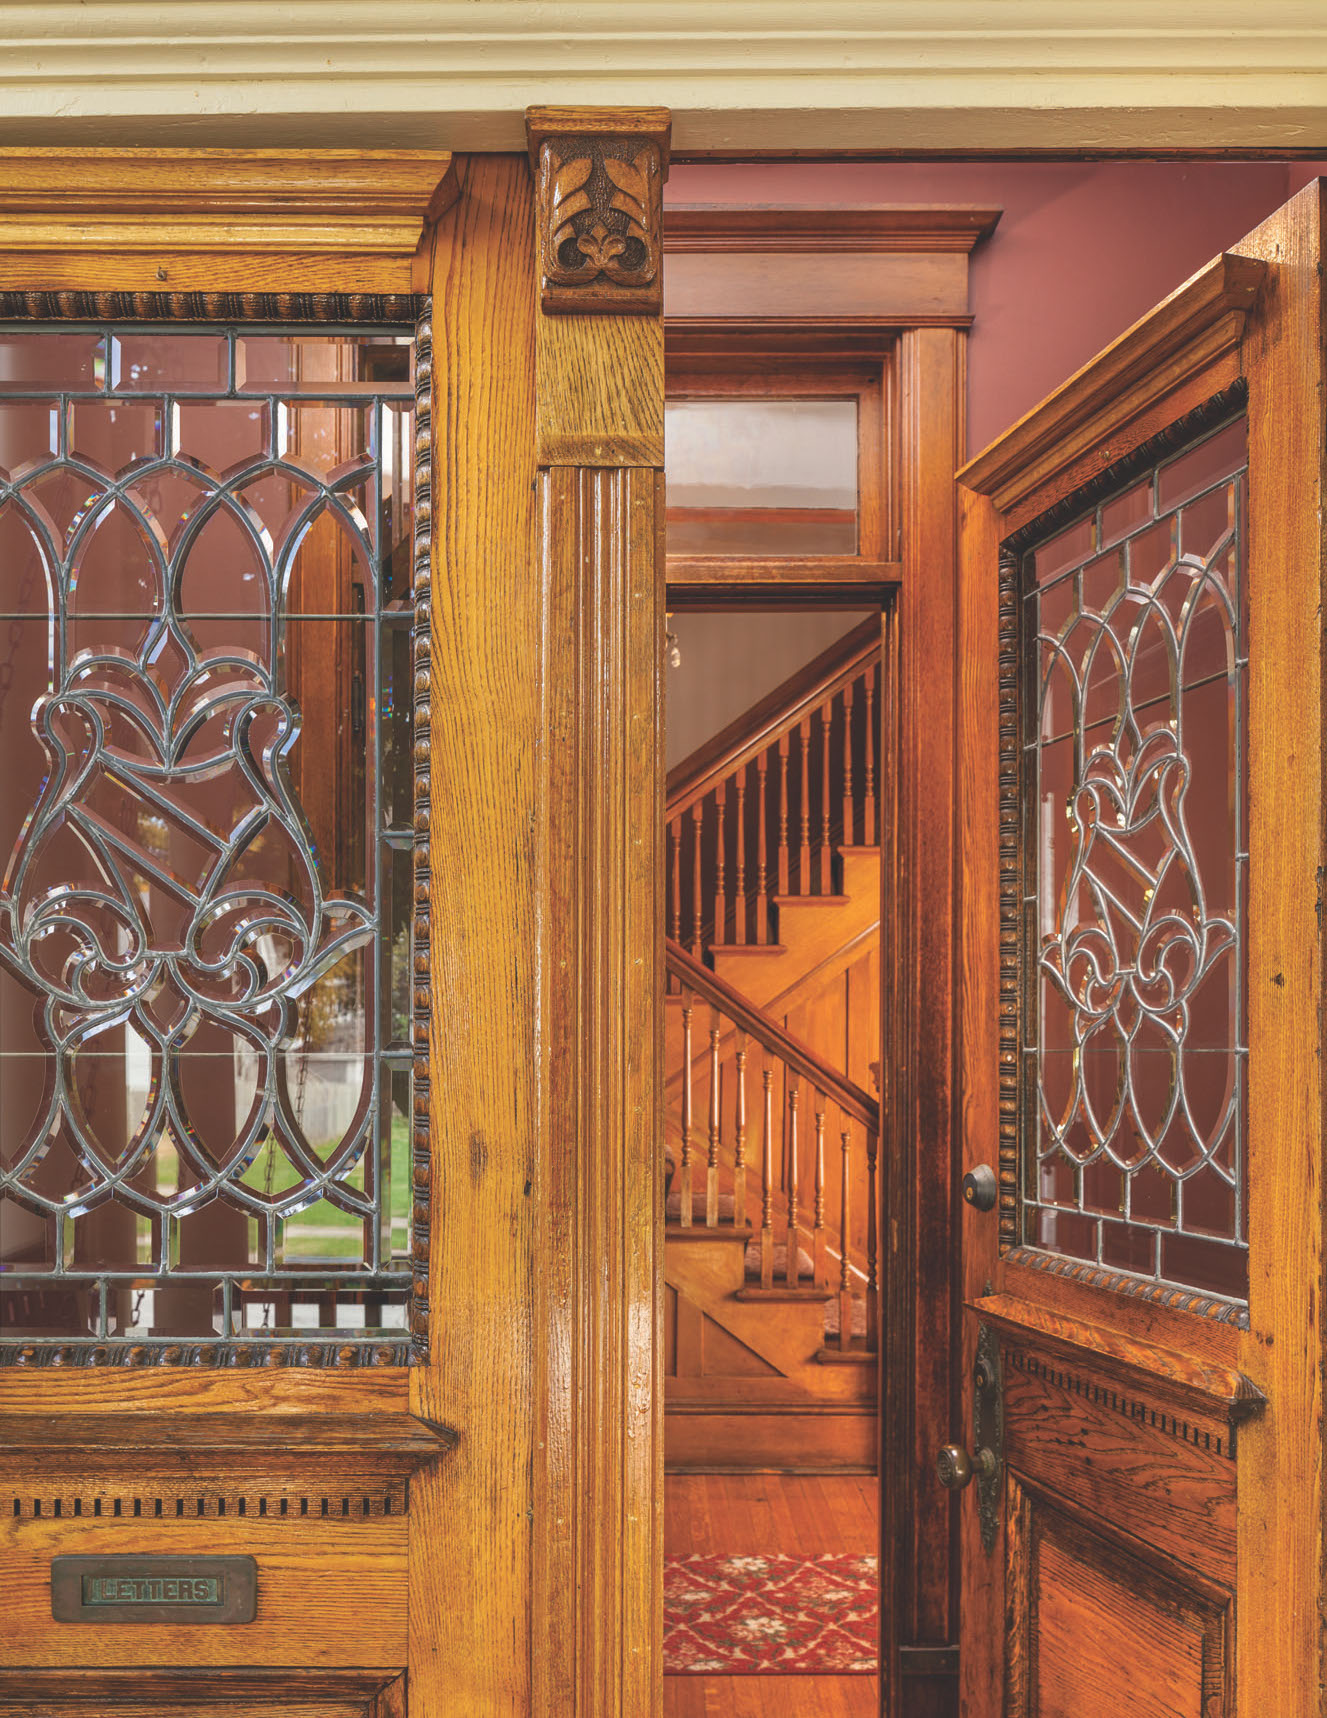 Handsome oak entry doors are period replacements for missing originals; the beveled-glass panels are also salvage and complement those still on the house. Staircase and trim are original.